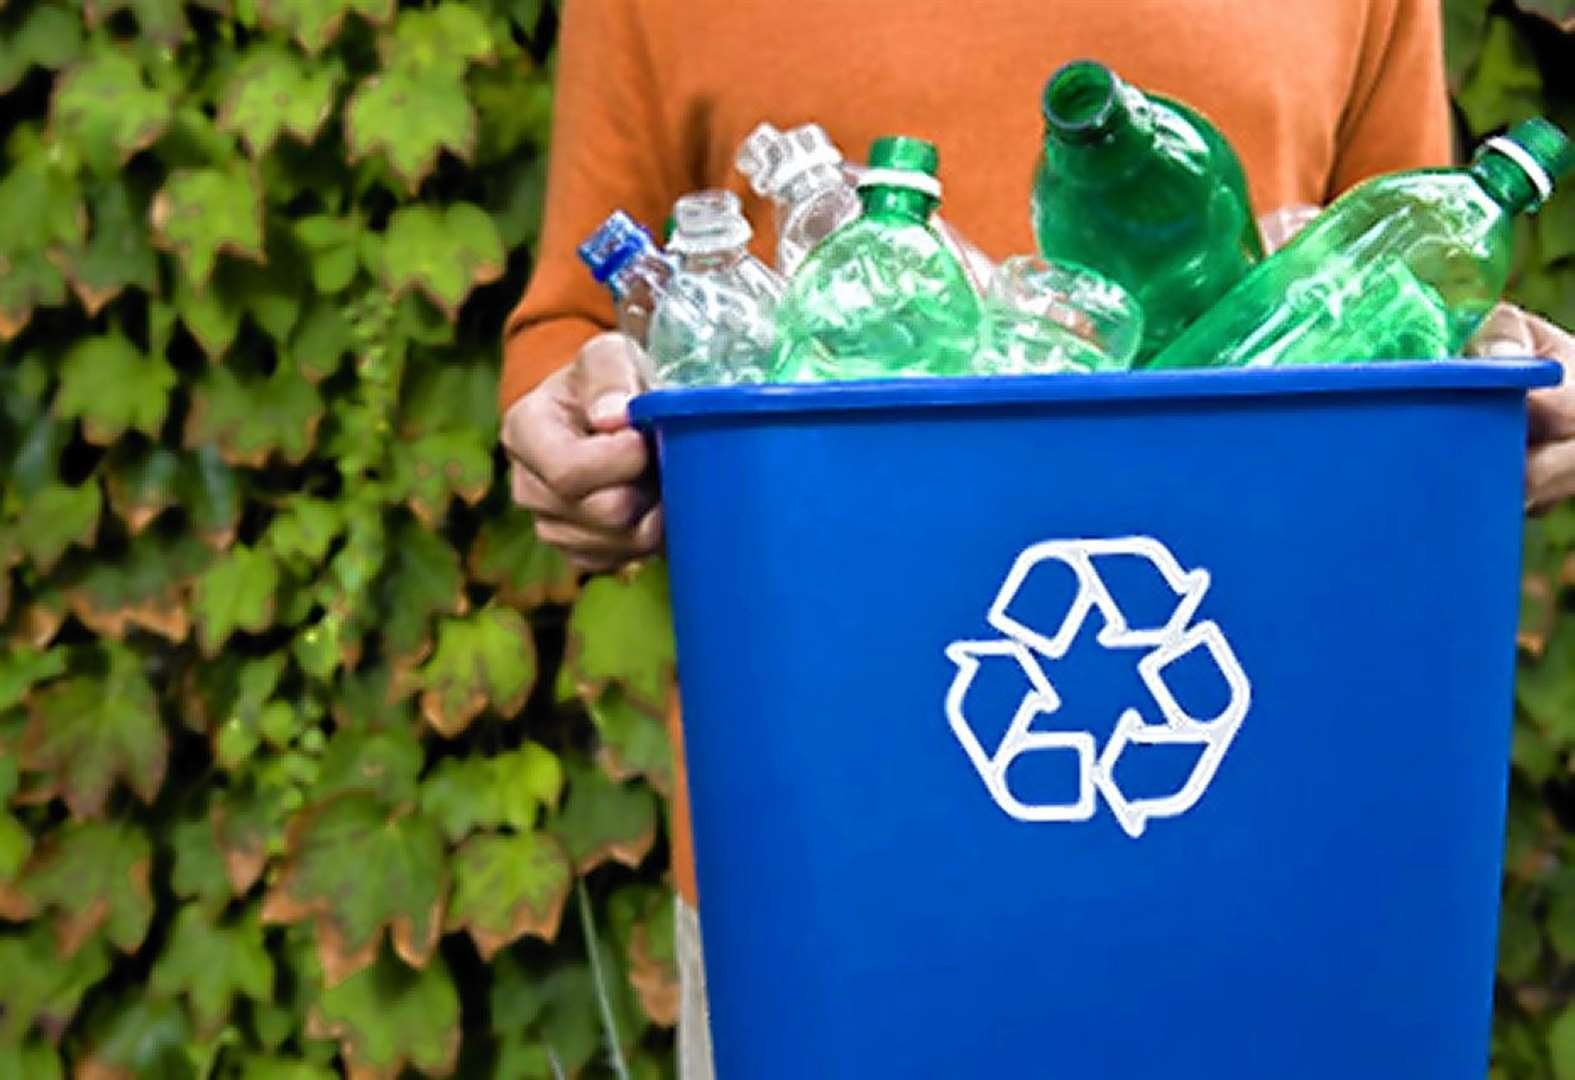 Council aiming to increase recycling at centres